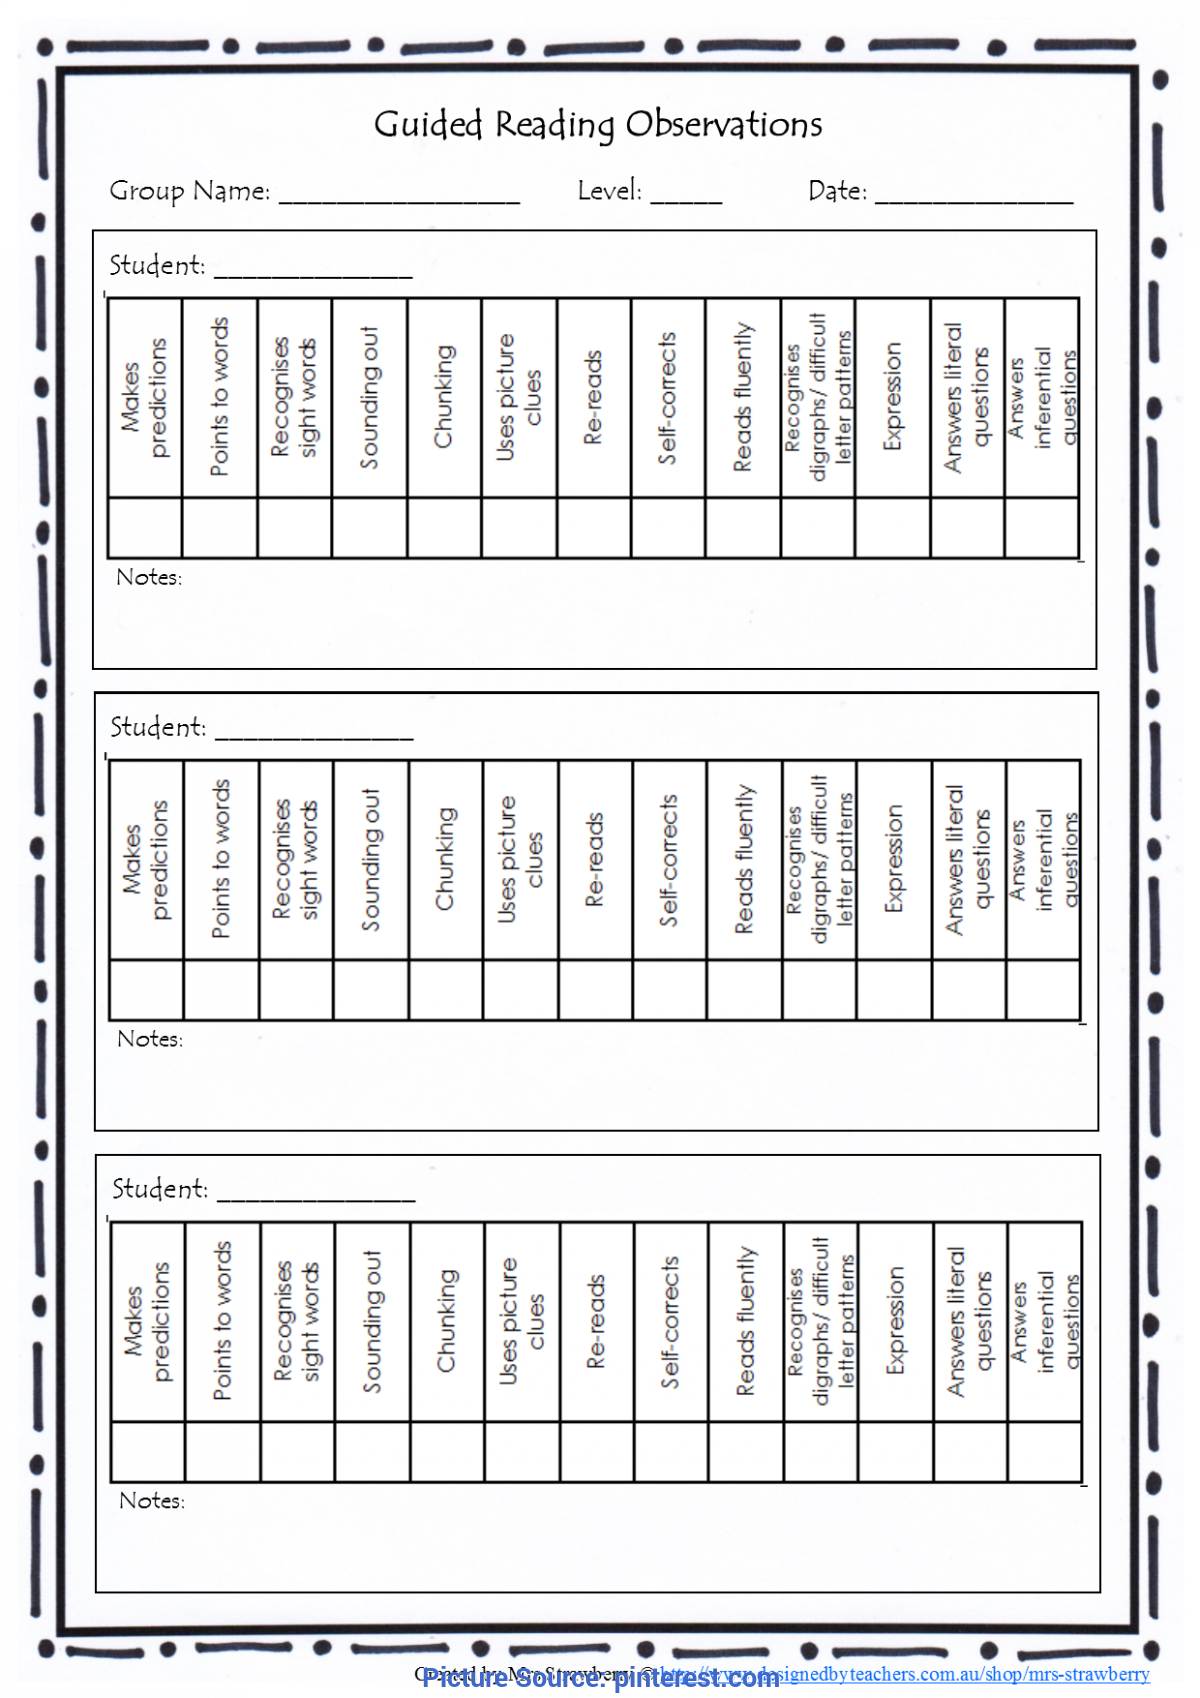 Newest Guided Reading Observation Checklist Guided Reading Observations Checklist Copy This Page Back An